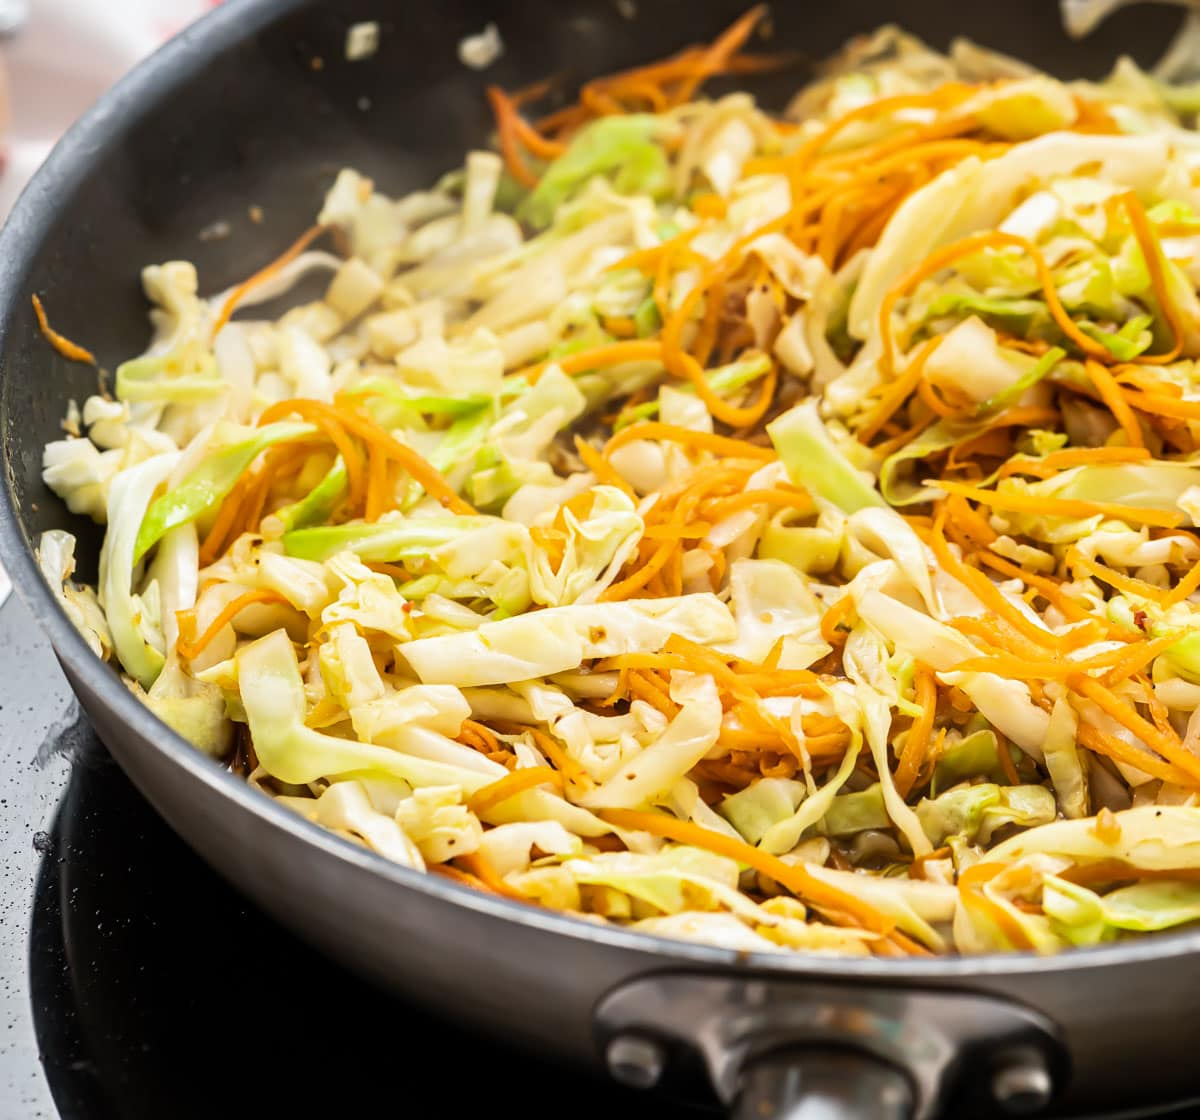 A skillet with cabbage and carrots